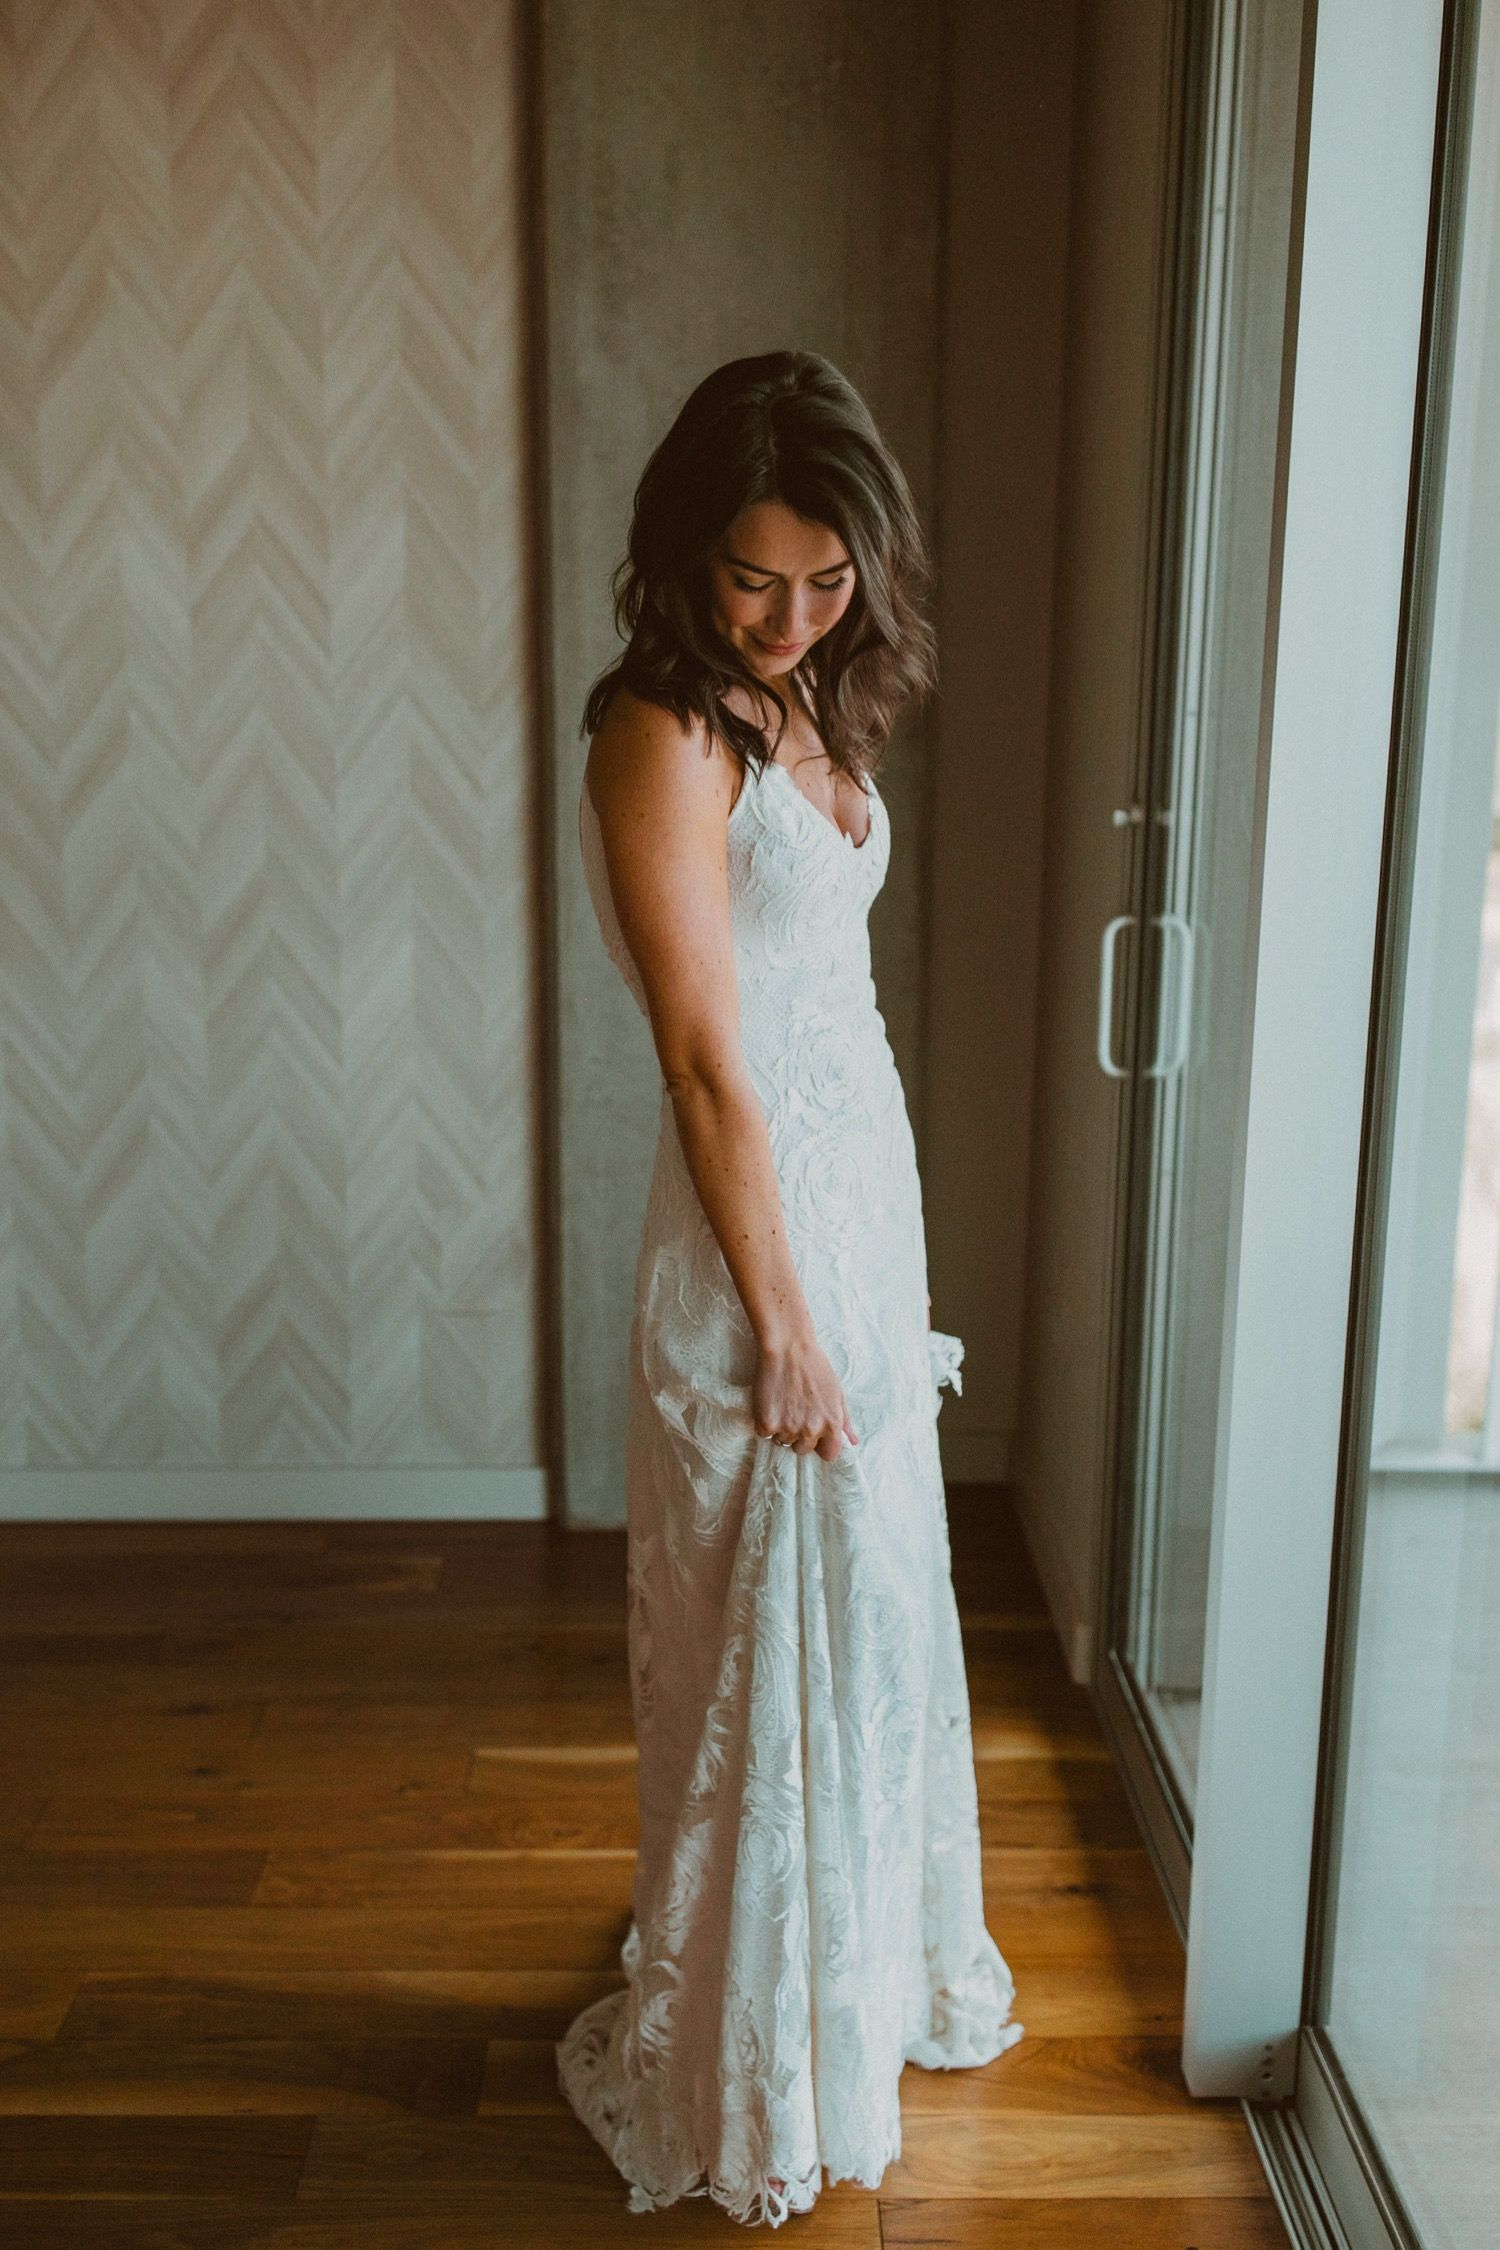 Cutest, most spunky bride getting ready for her big day